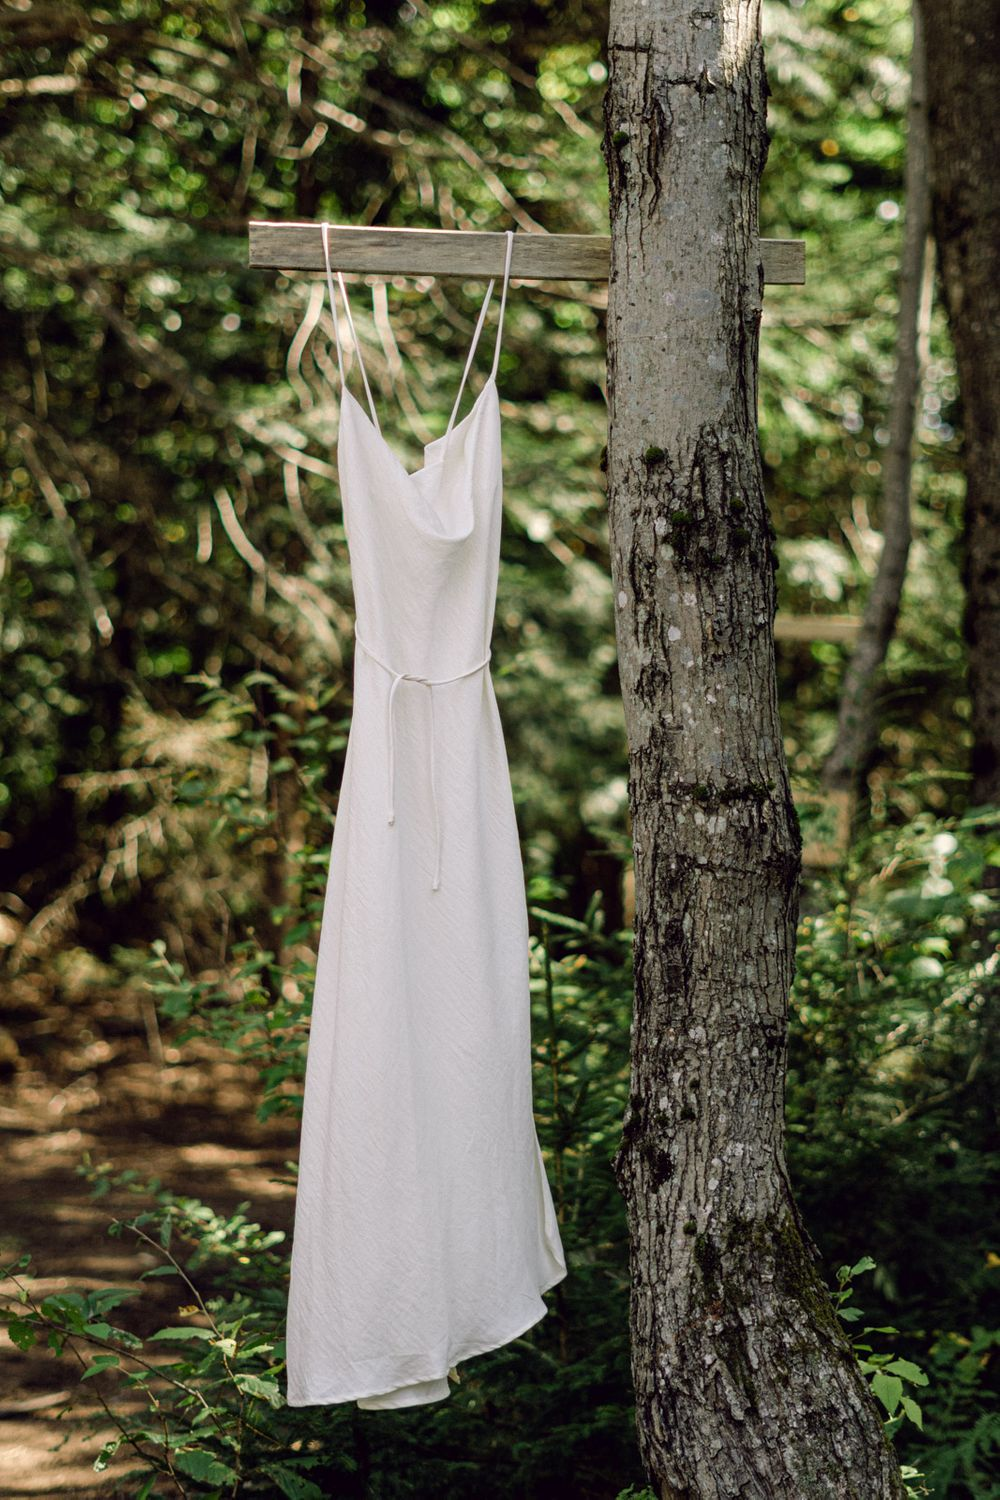 Wedding Dress Hanging in Forest